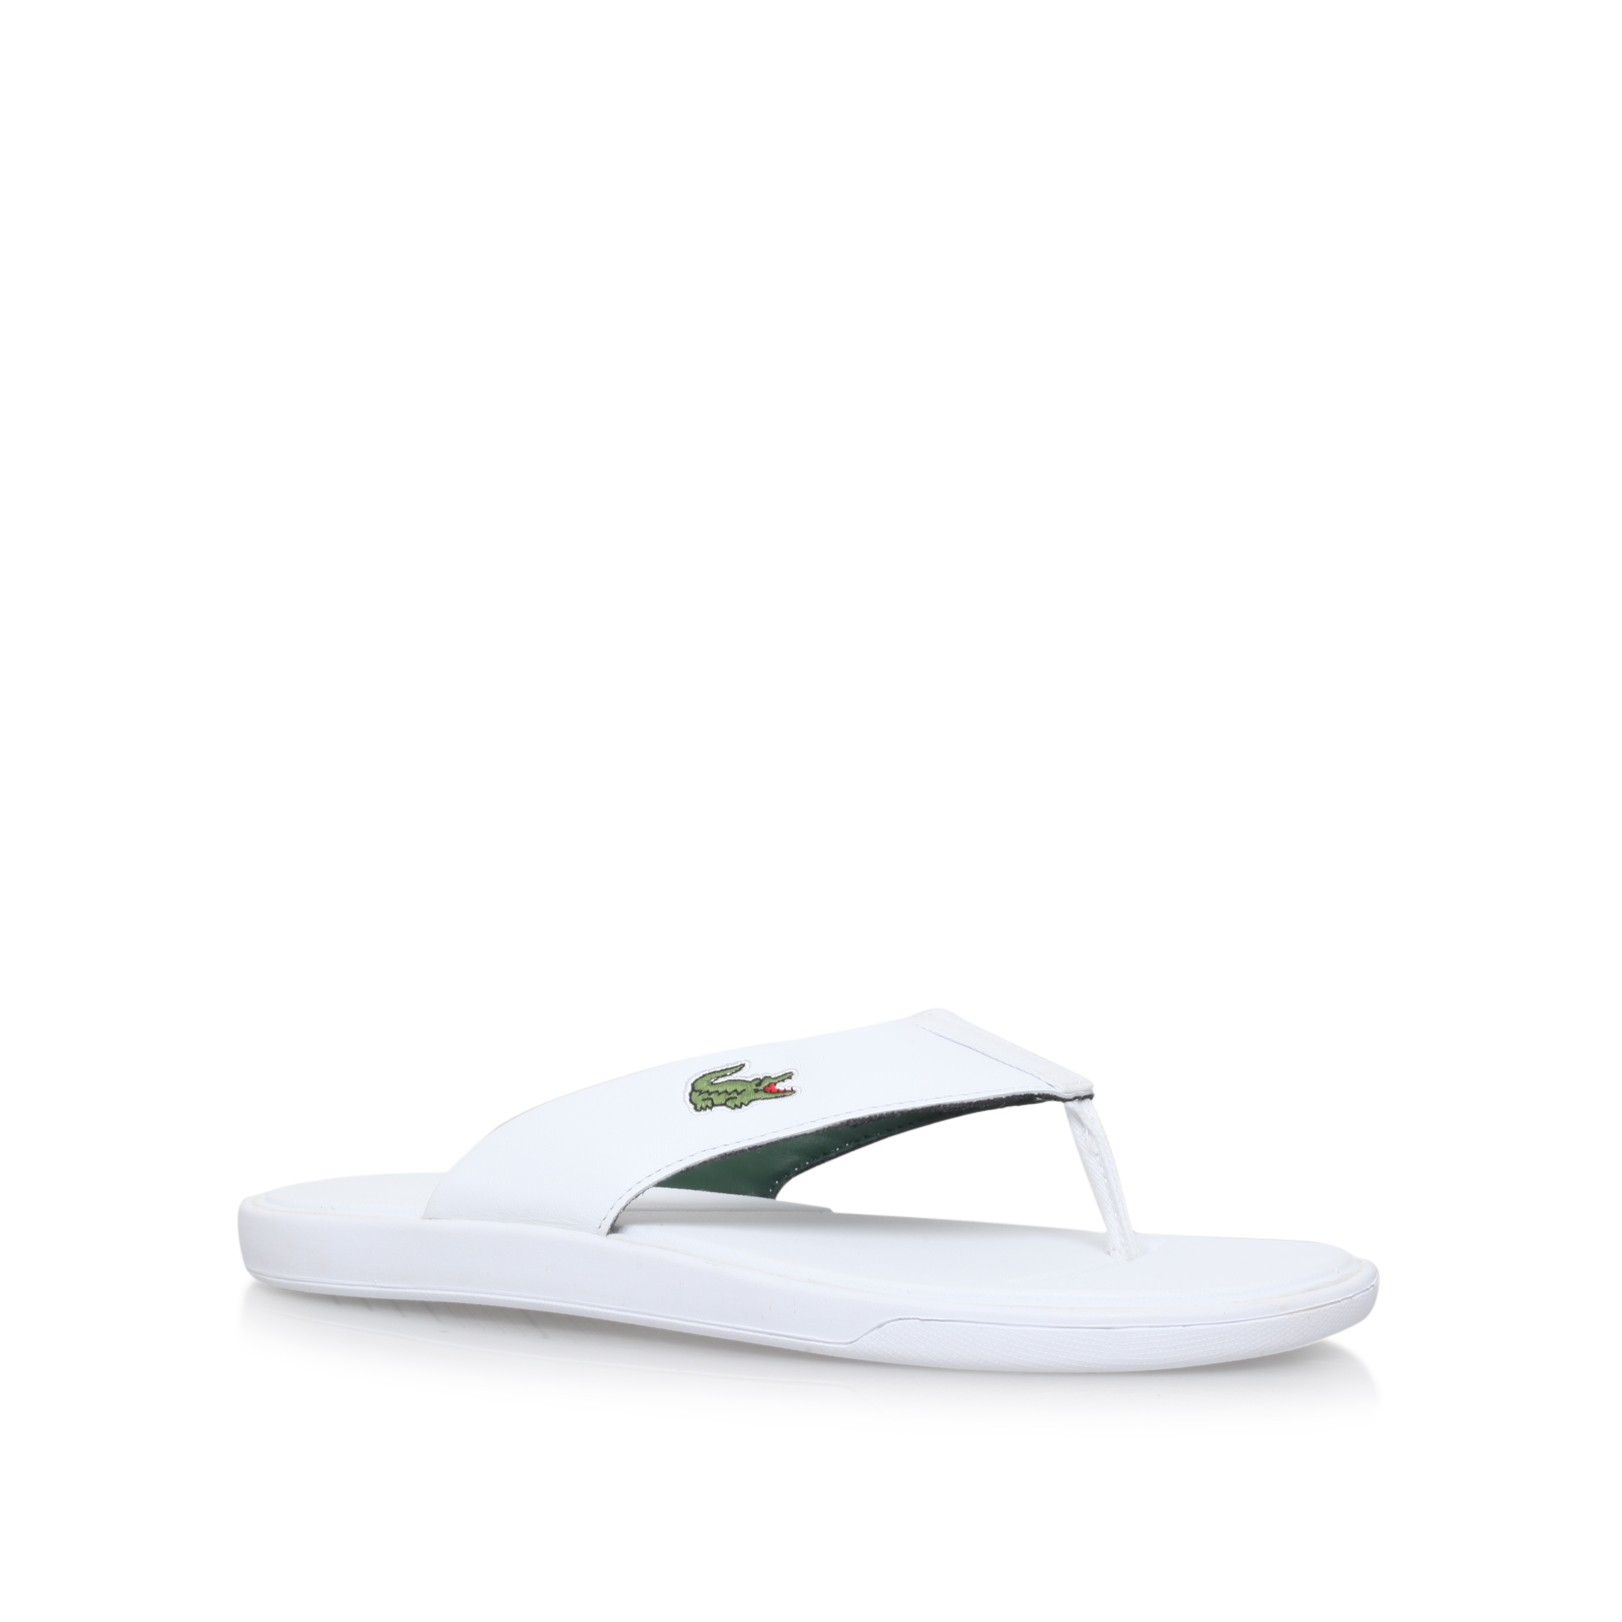 47d3dab2d10f7 Lacoste L30 Flip Flop in White for Men - Lyst